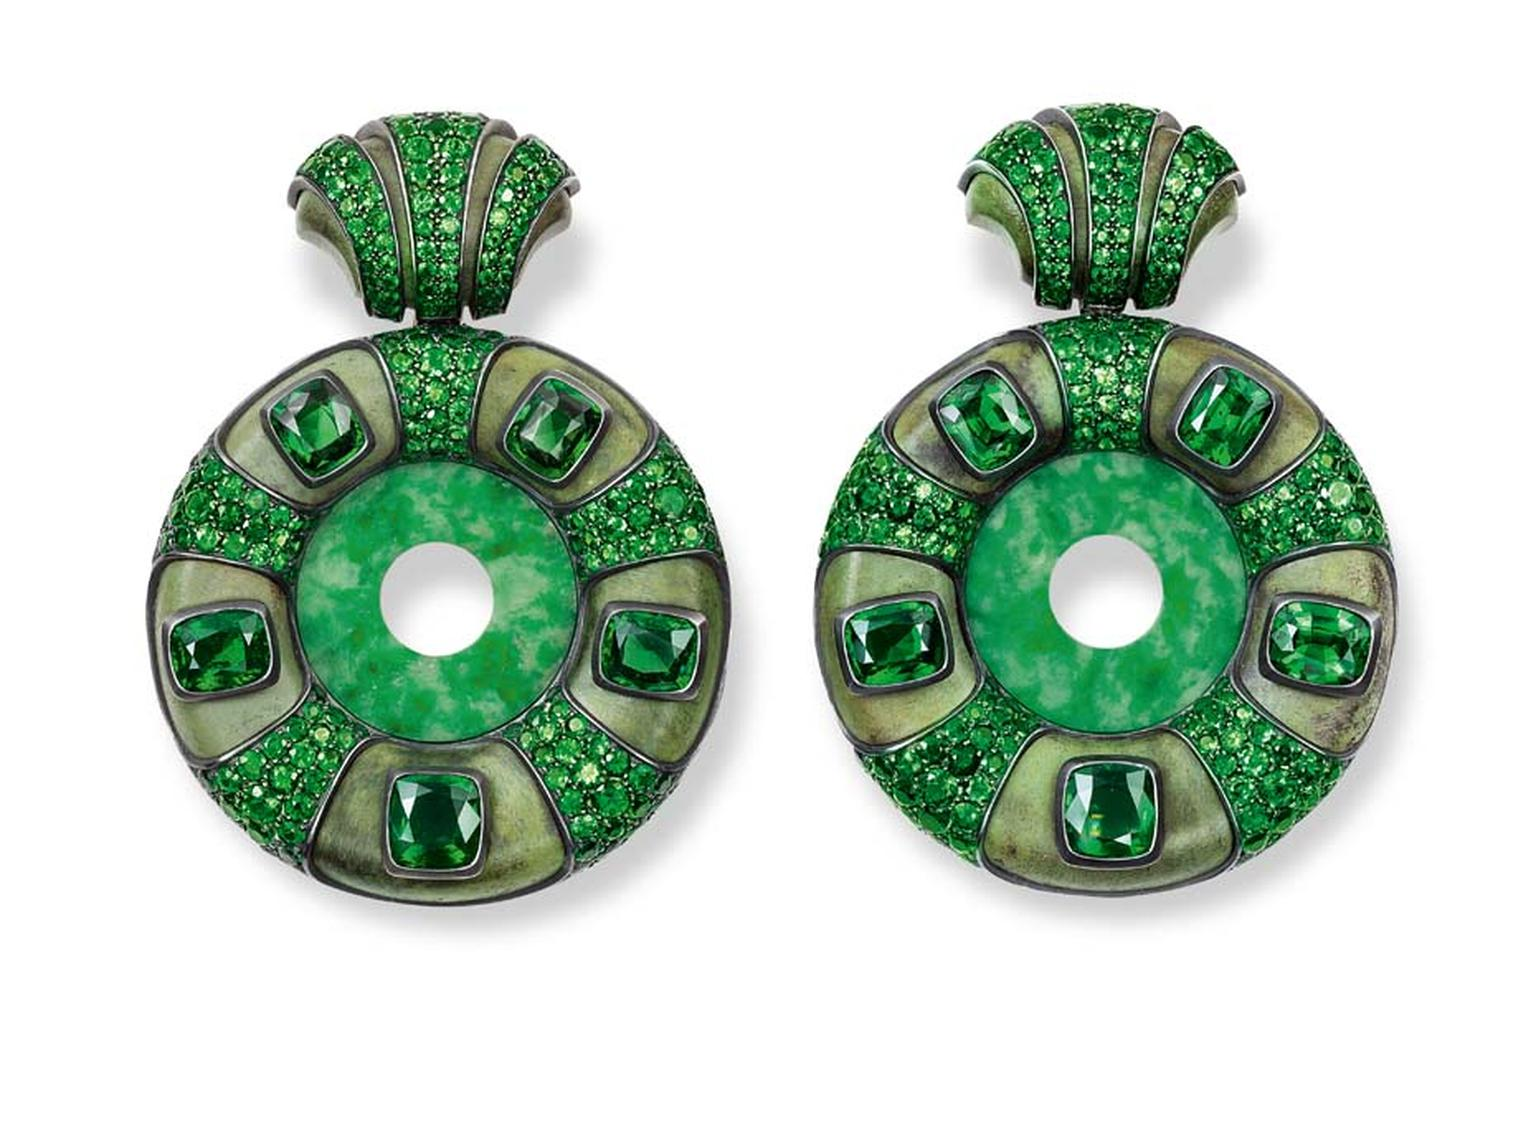 Hemmerle earrings with jade discs and tsavorites in silver and gold.